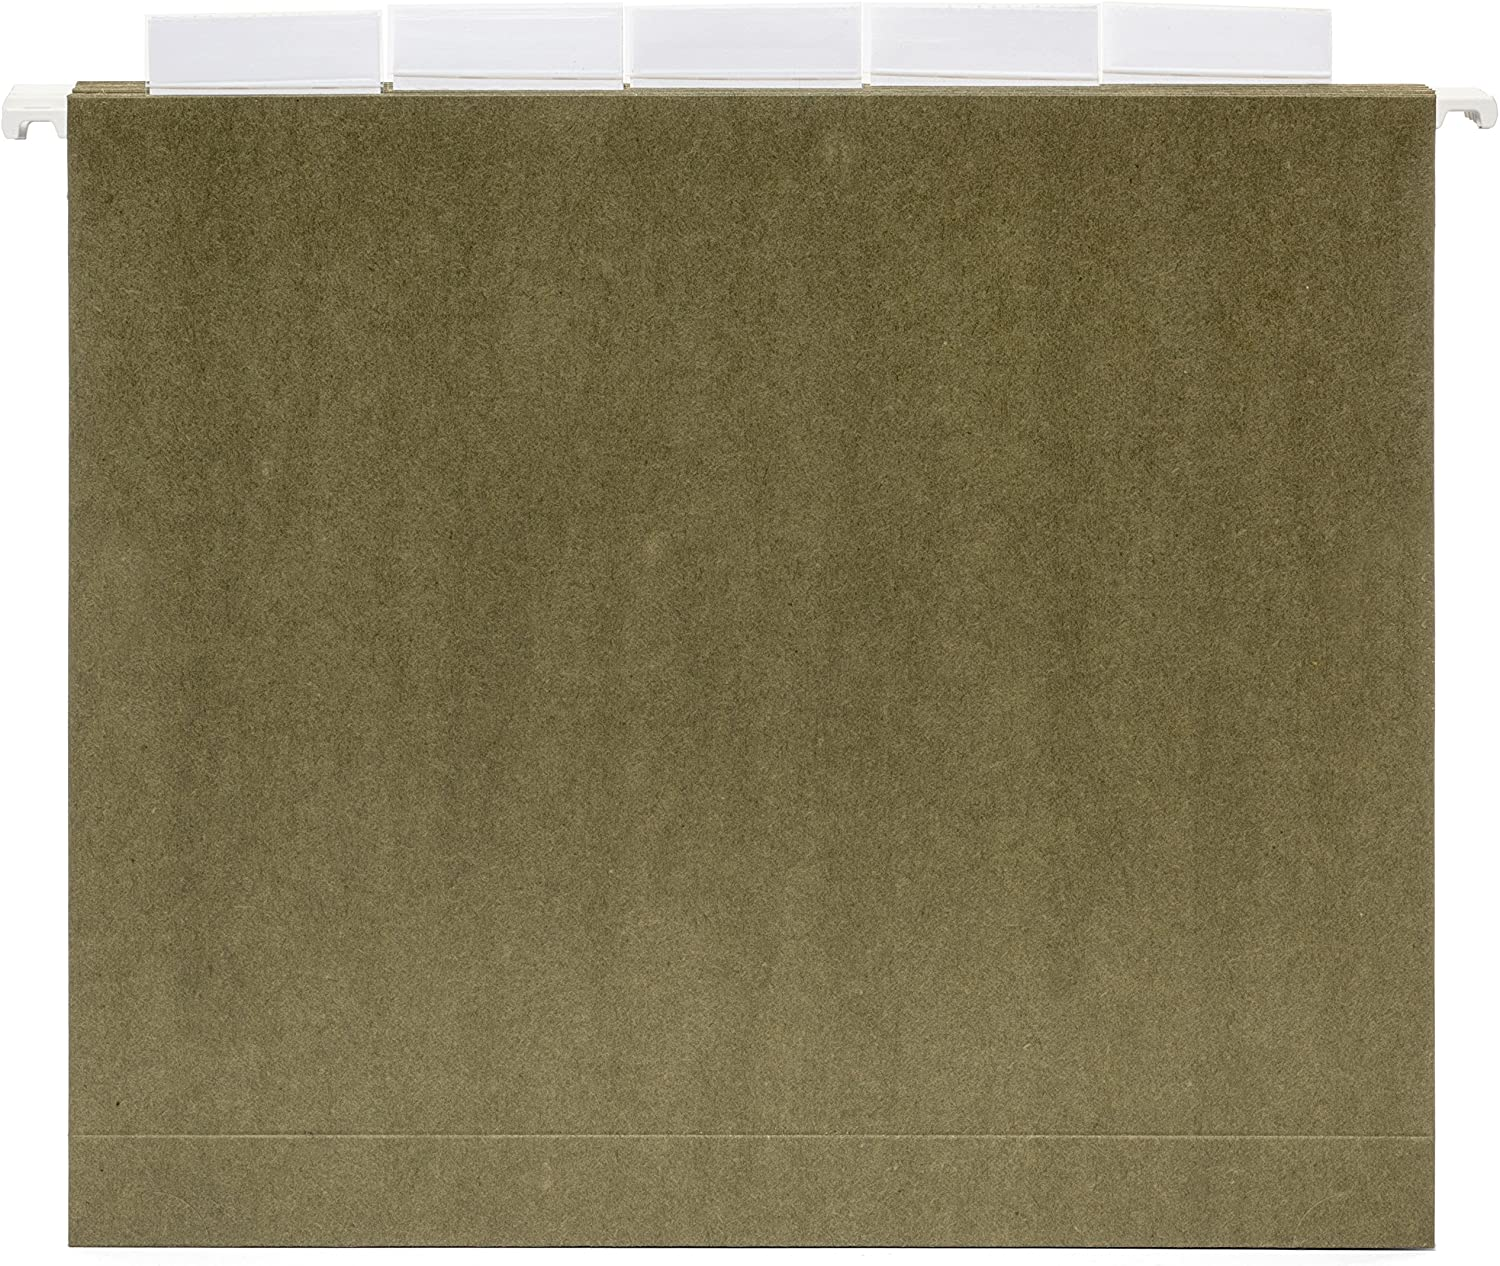 Blue Summit Supplies Extra Capacity Hanging File Folders, 25 Reinforced Hang Folders, Heavy Duty 2 Inch Expansion, Designed for Bulky Files and Charts, Letter Size, Standard Green, 25 Pack : Office Products